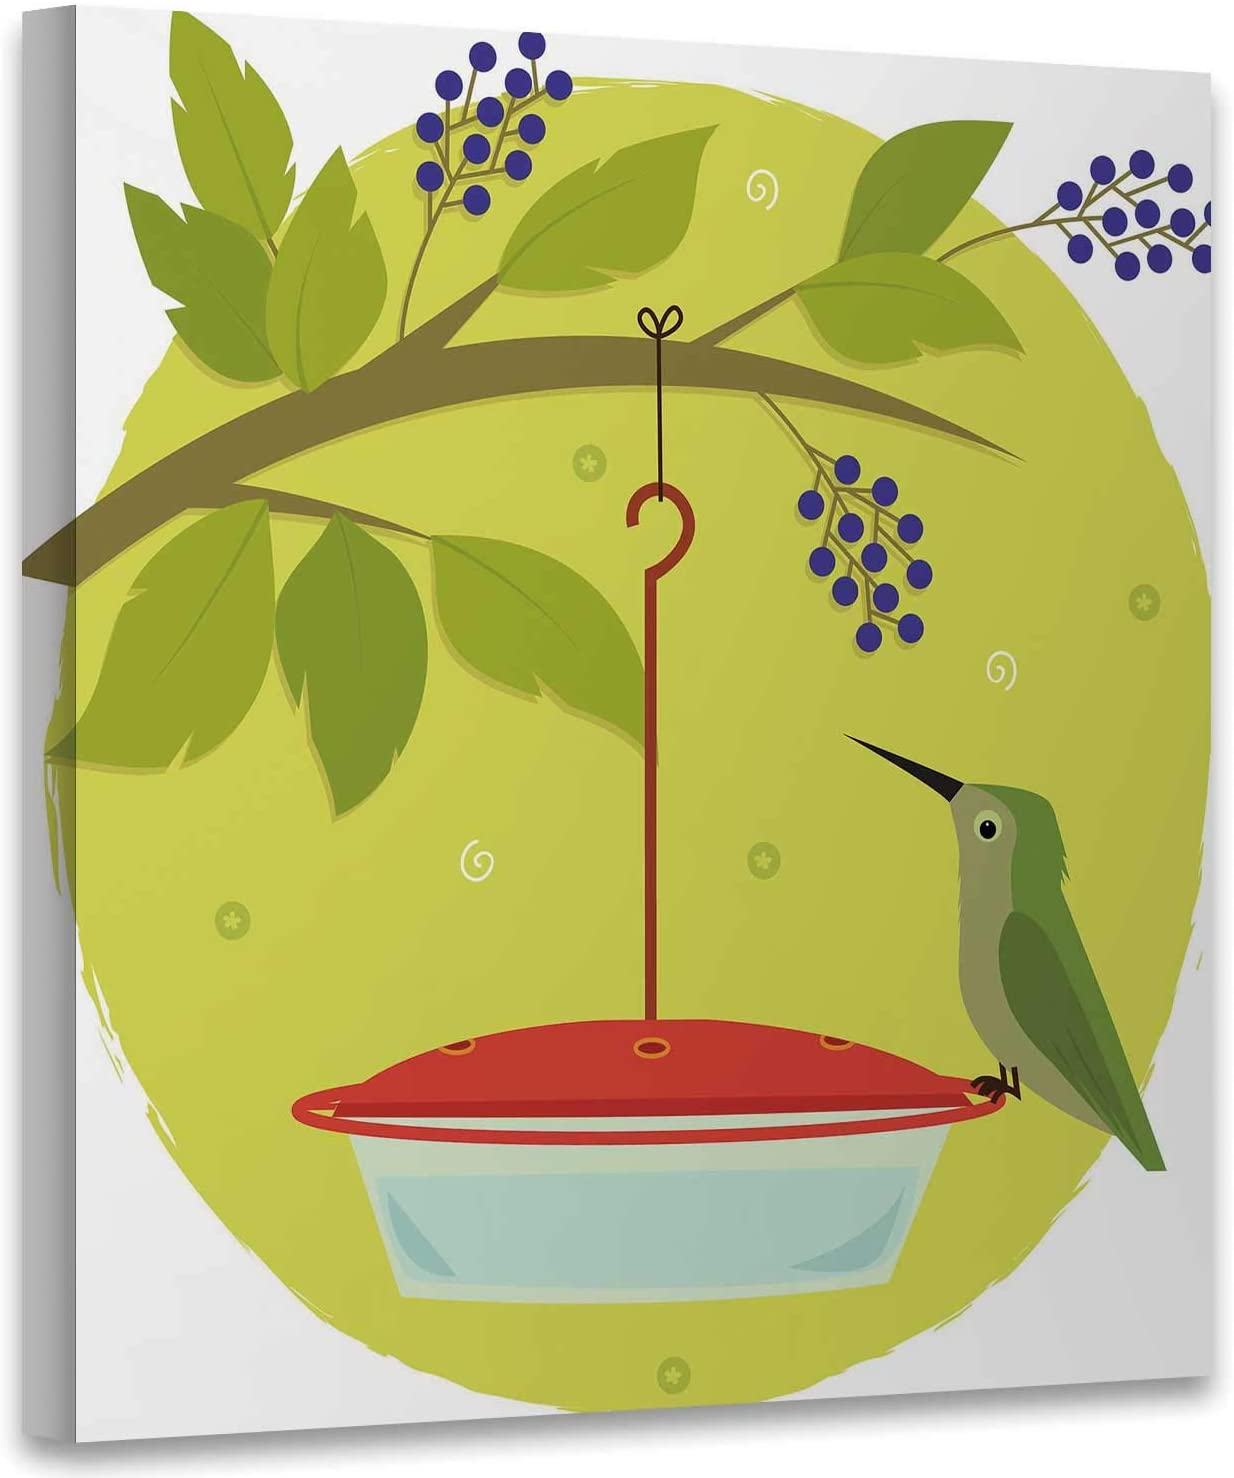 Hummingbird and Feeder Cute Clip Art of Standing on a Feeder.Eps10,Abstract Wall Art Wall Art for Living Room 16x16 Inches